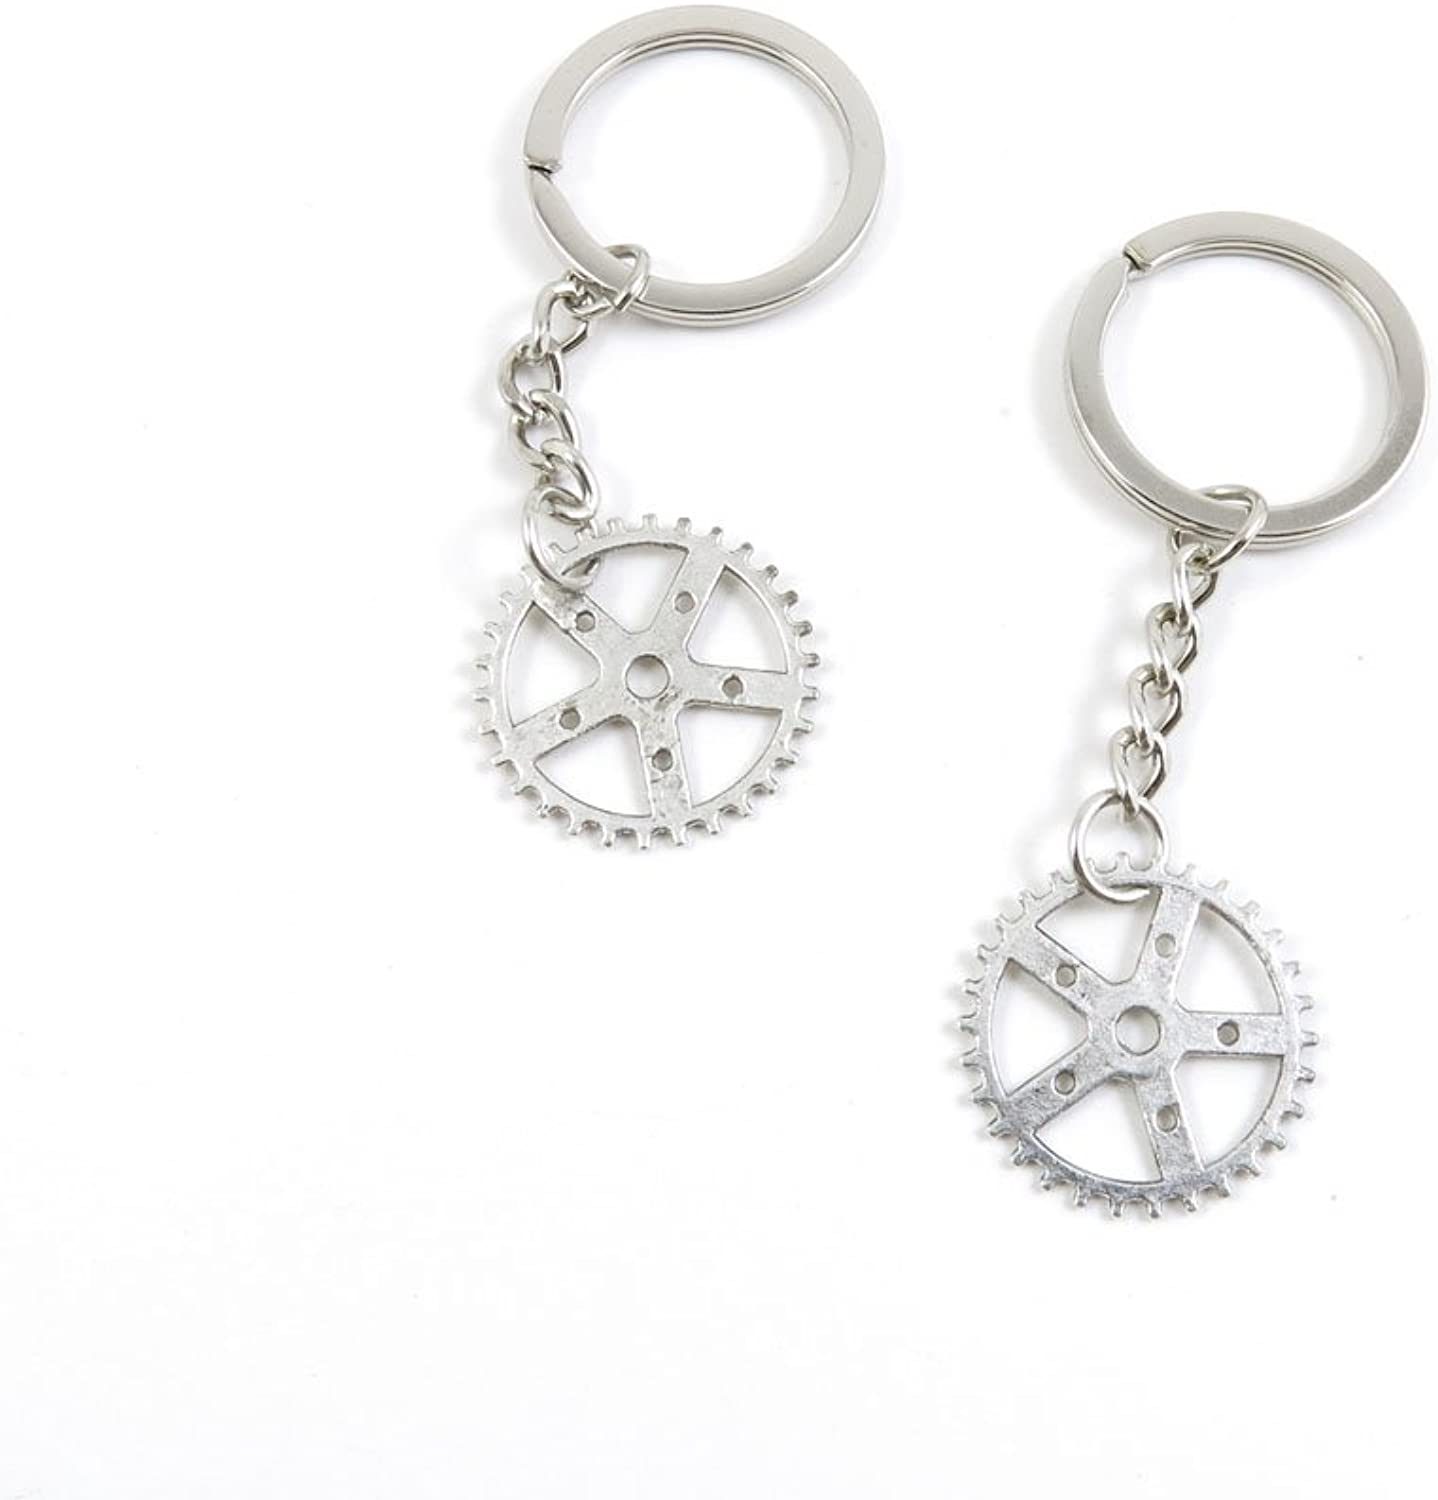 210 Pieces Fashion Jewelry Keyring Keychain Door Car Key Tag Ring Chain Supplier Supply Wholesale Bulk Lots Z7JS2 Cog Steampunk Gear Gearwheel